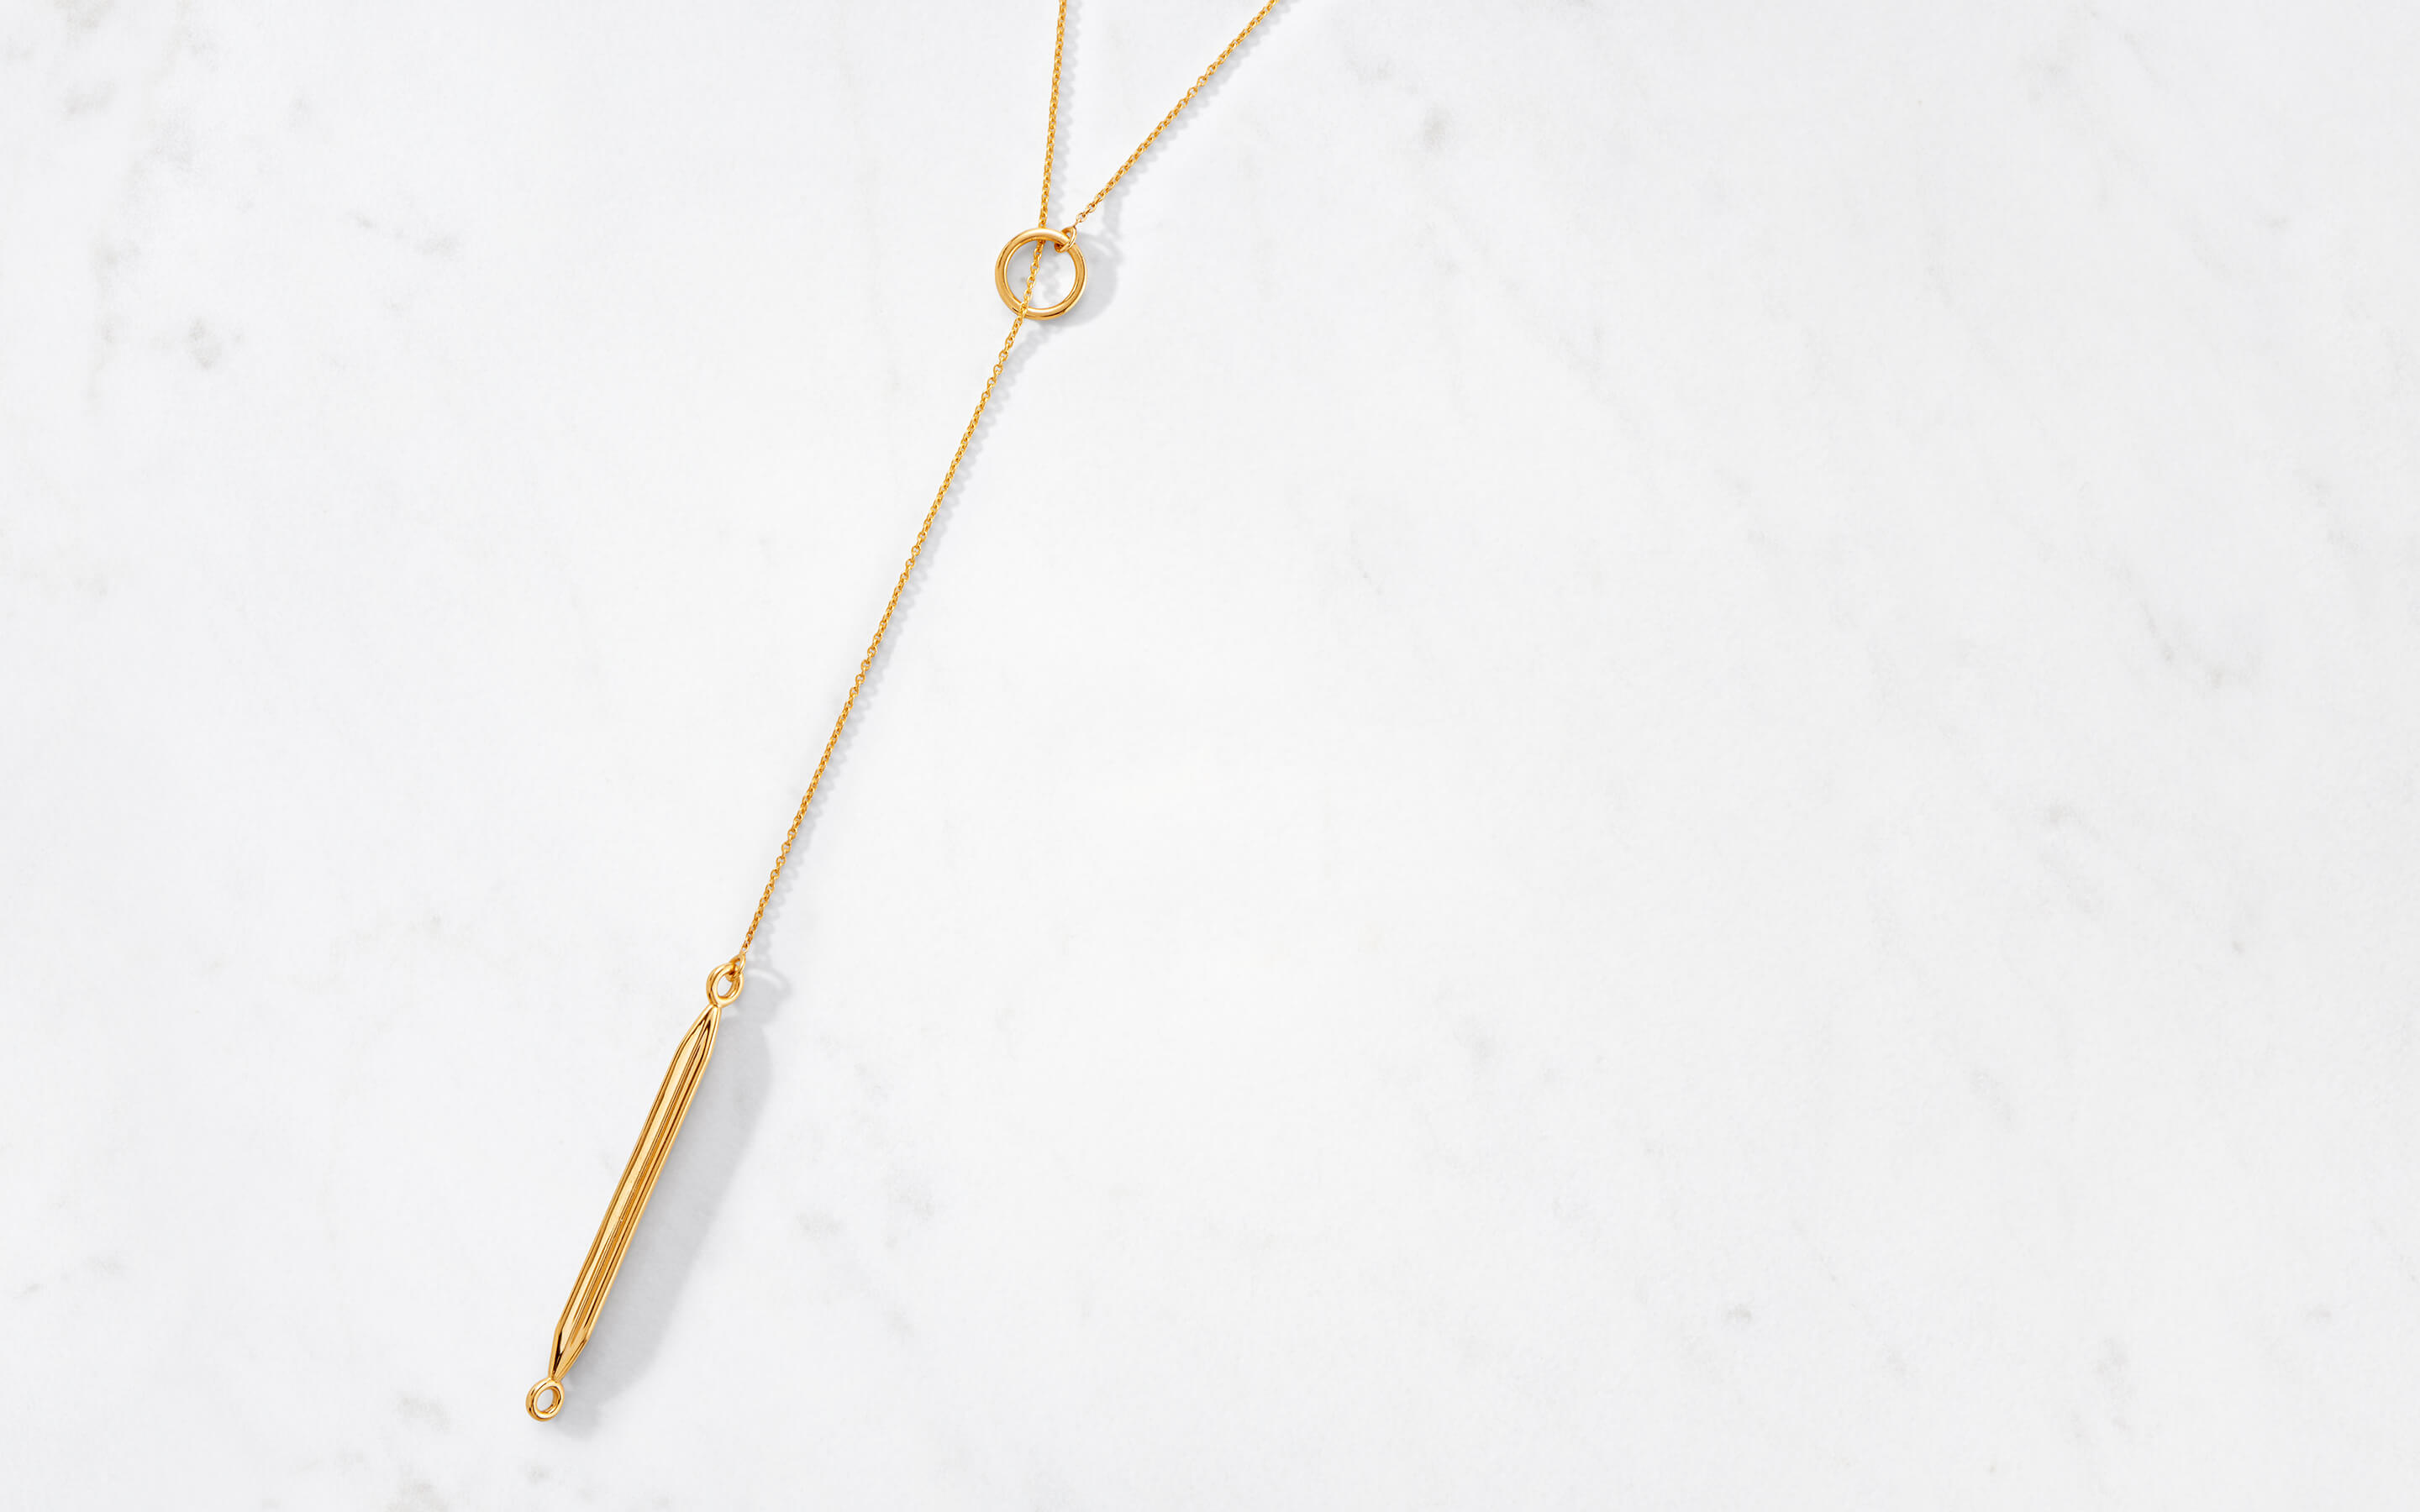 modern 22 karat gold necklace in lariat-style with obelisk charm